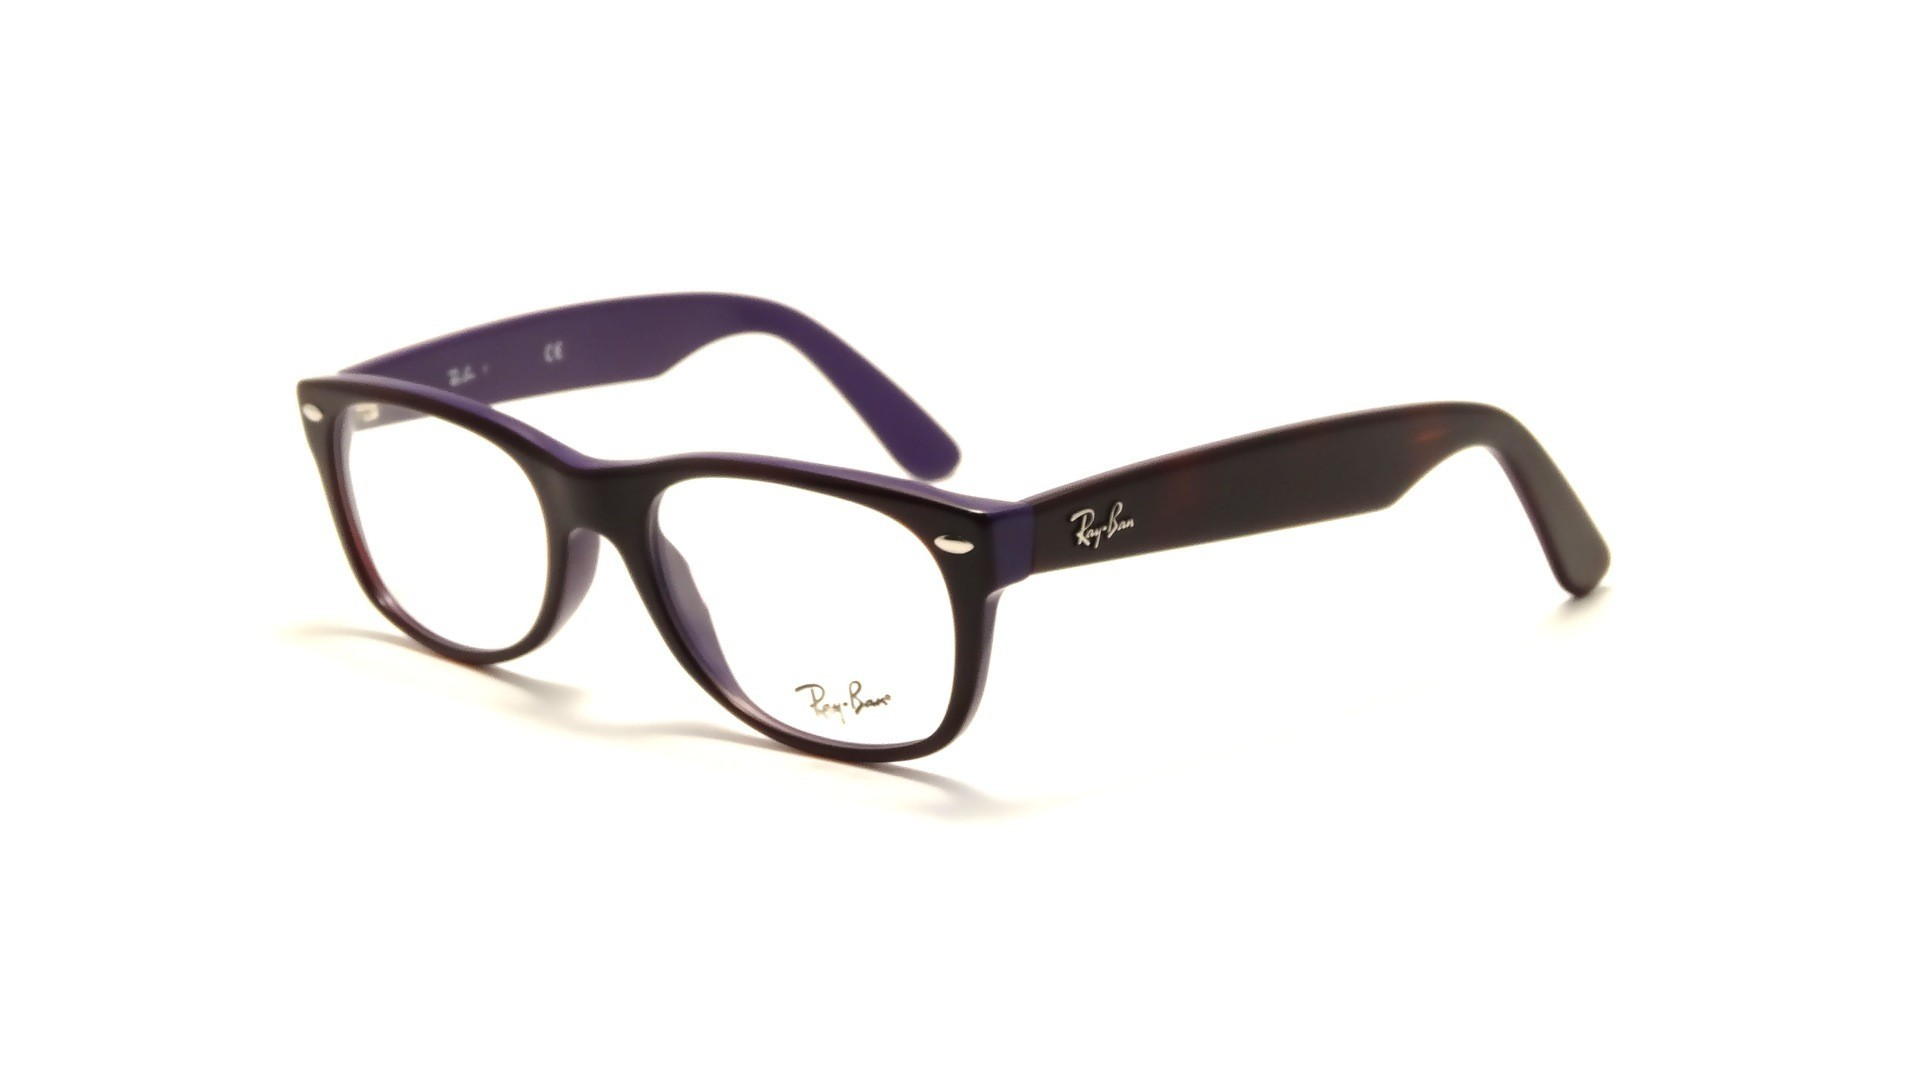 007a4463ed62 Ray Ban 5184 5215 « One More Soul